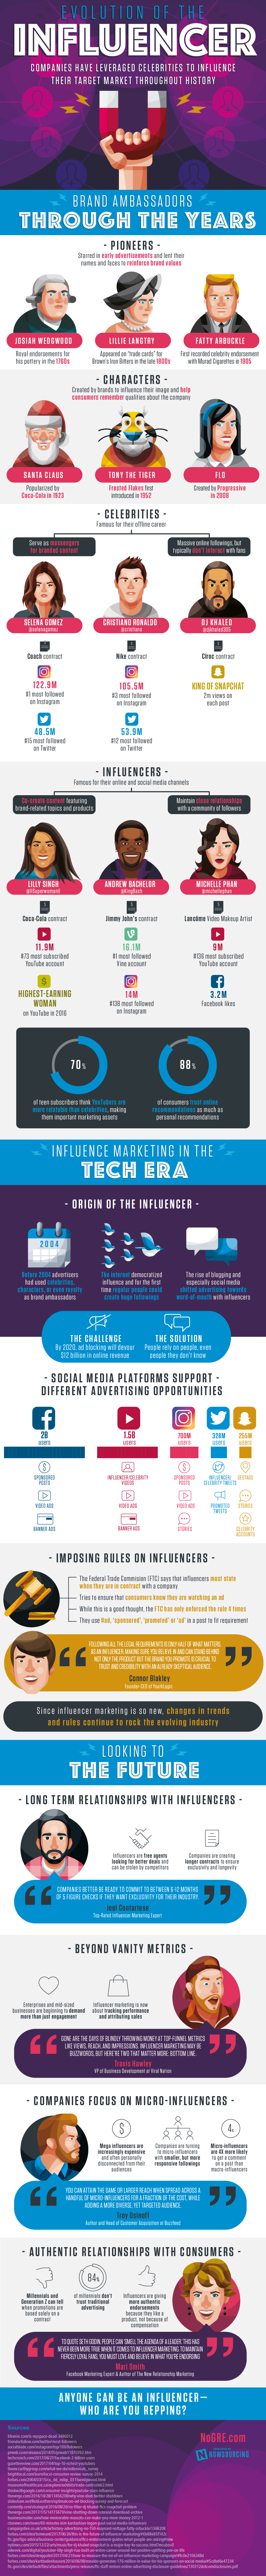 The Evolution of Social Media Influencers [Infographic] | Social Media Today